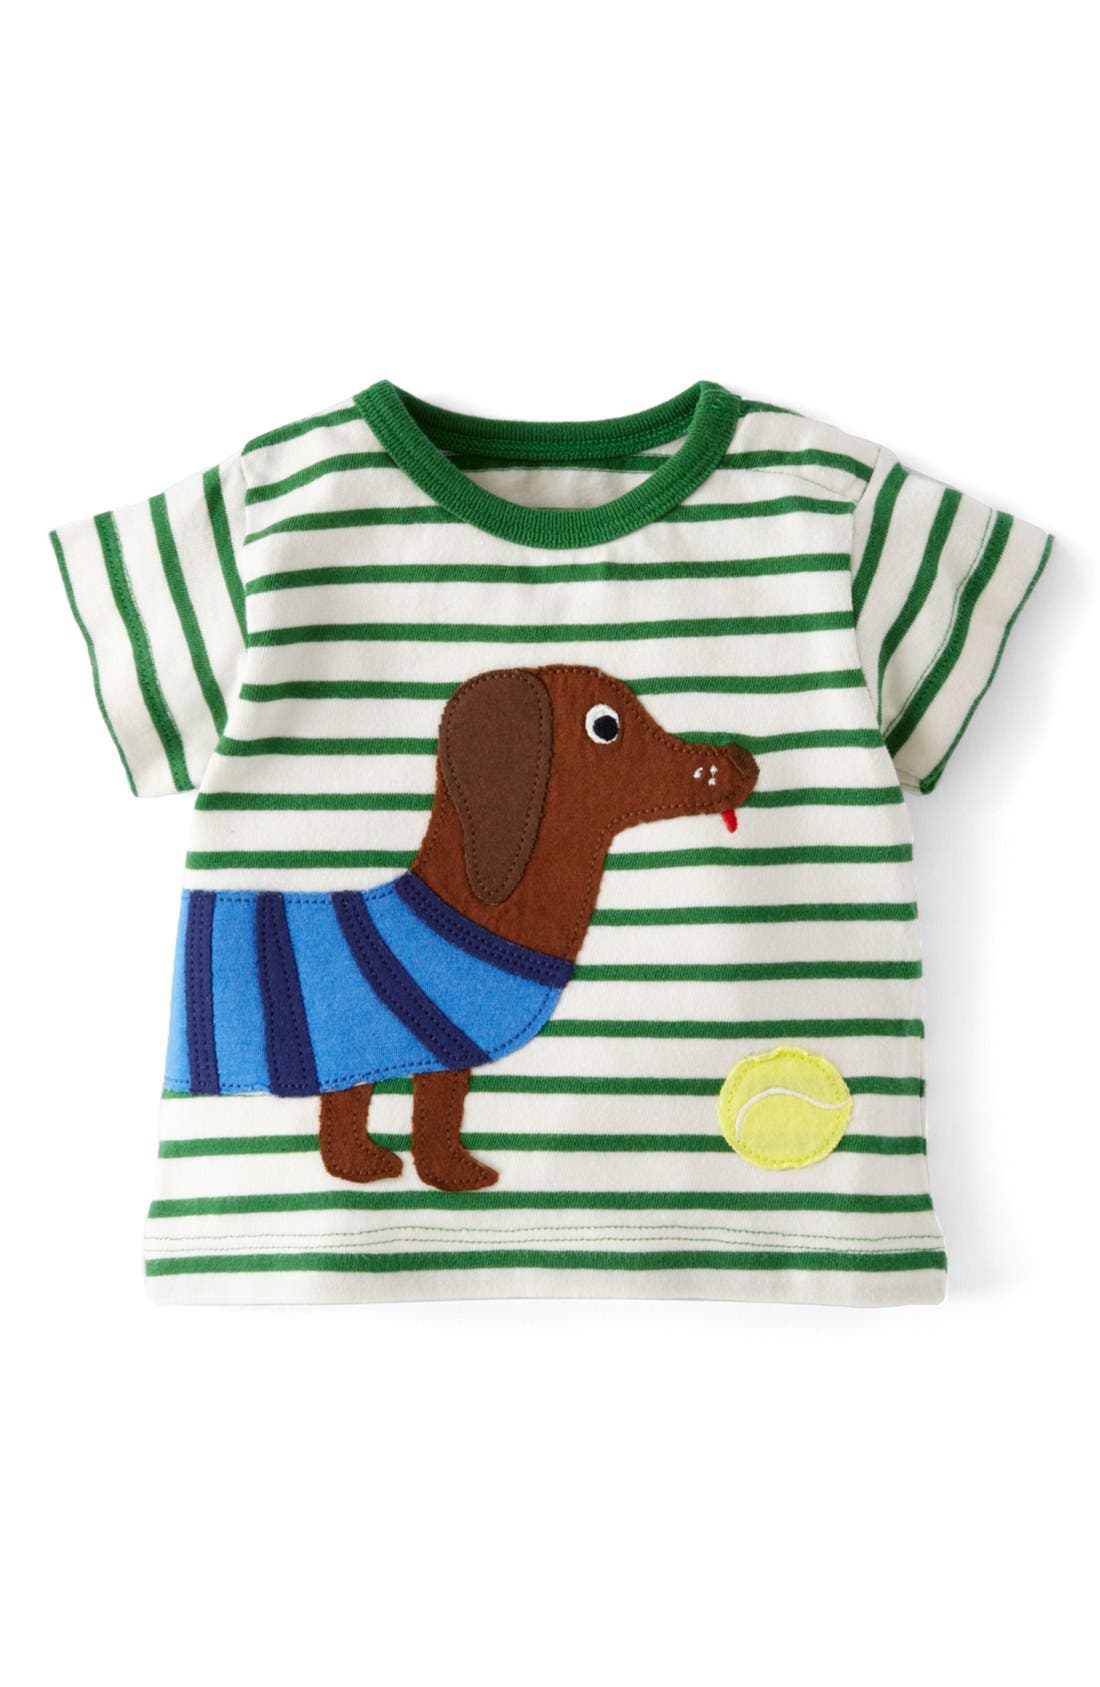 Main Image - Mini Boden 'Seaside' Cotton T-Shirt (Baby Boys)